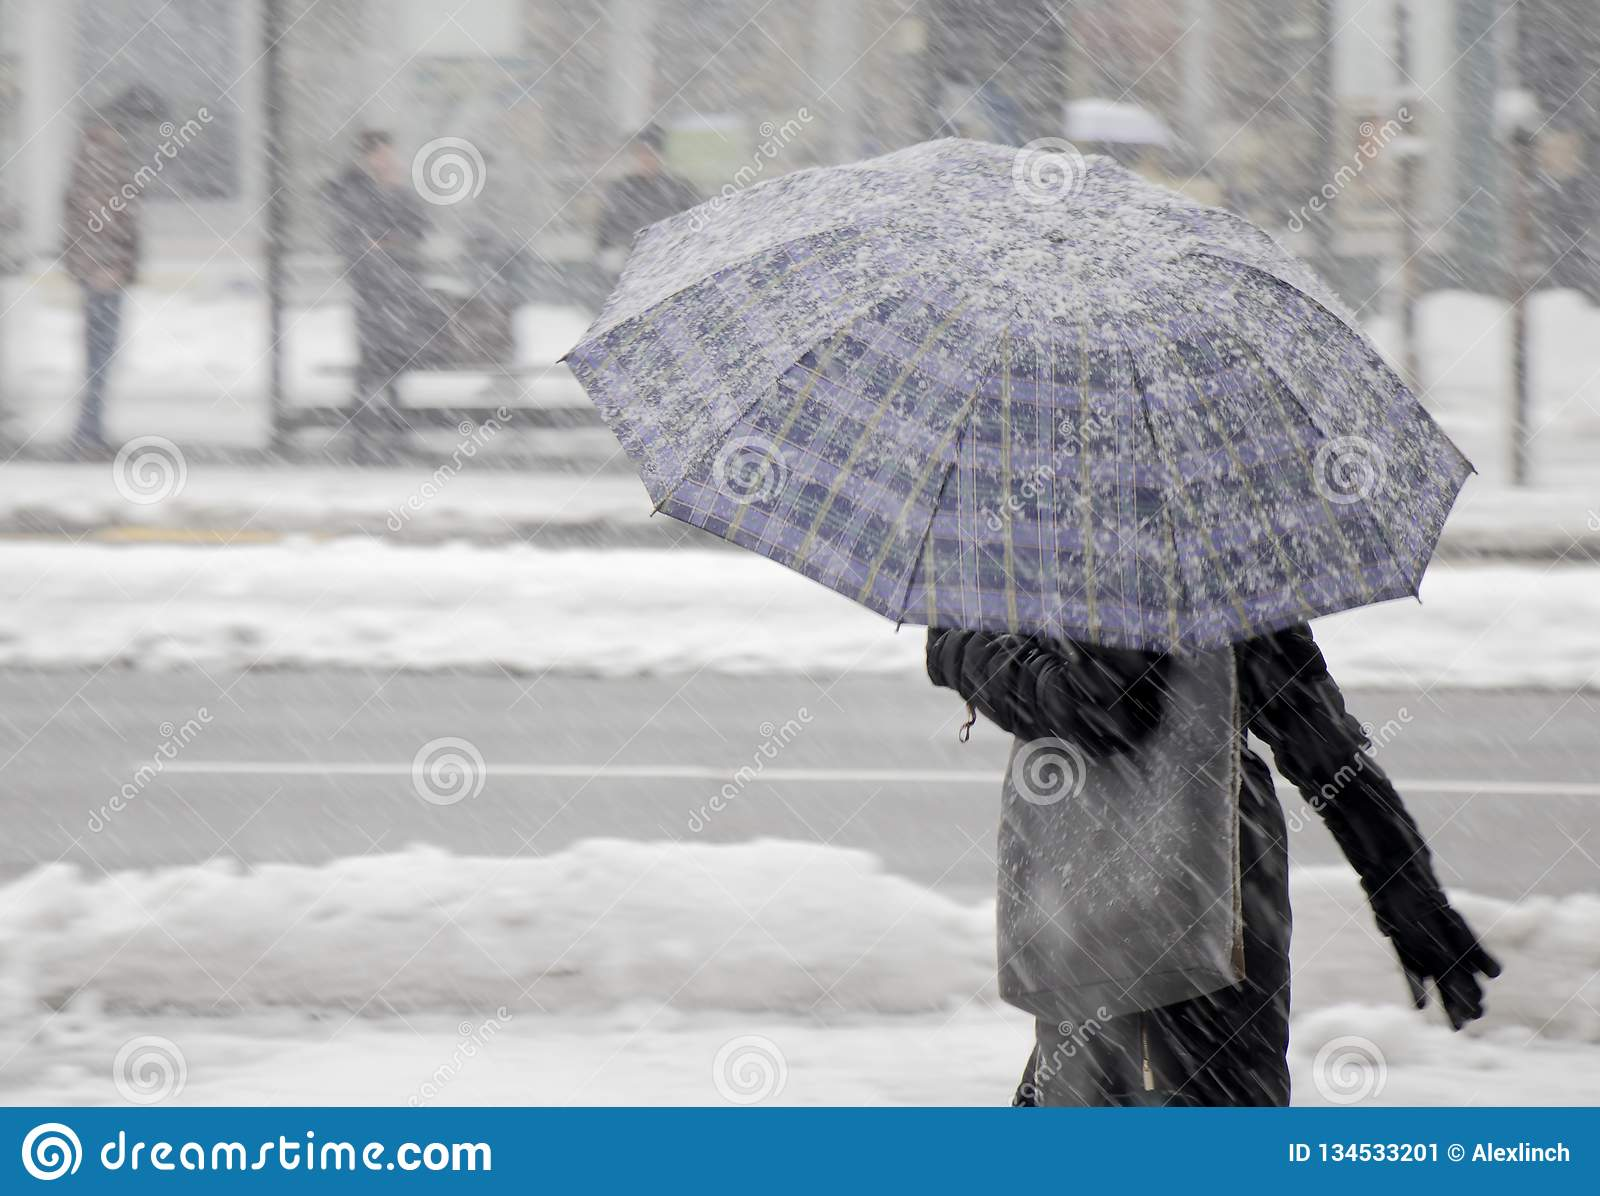 One women walking under umbrella in heavy snowfall